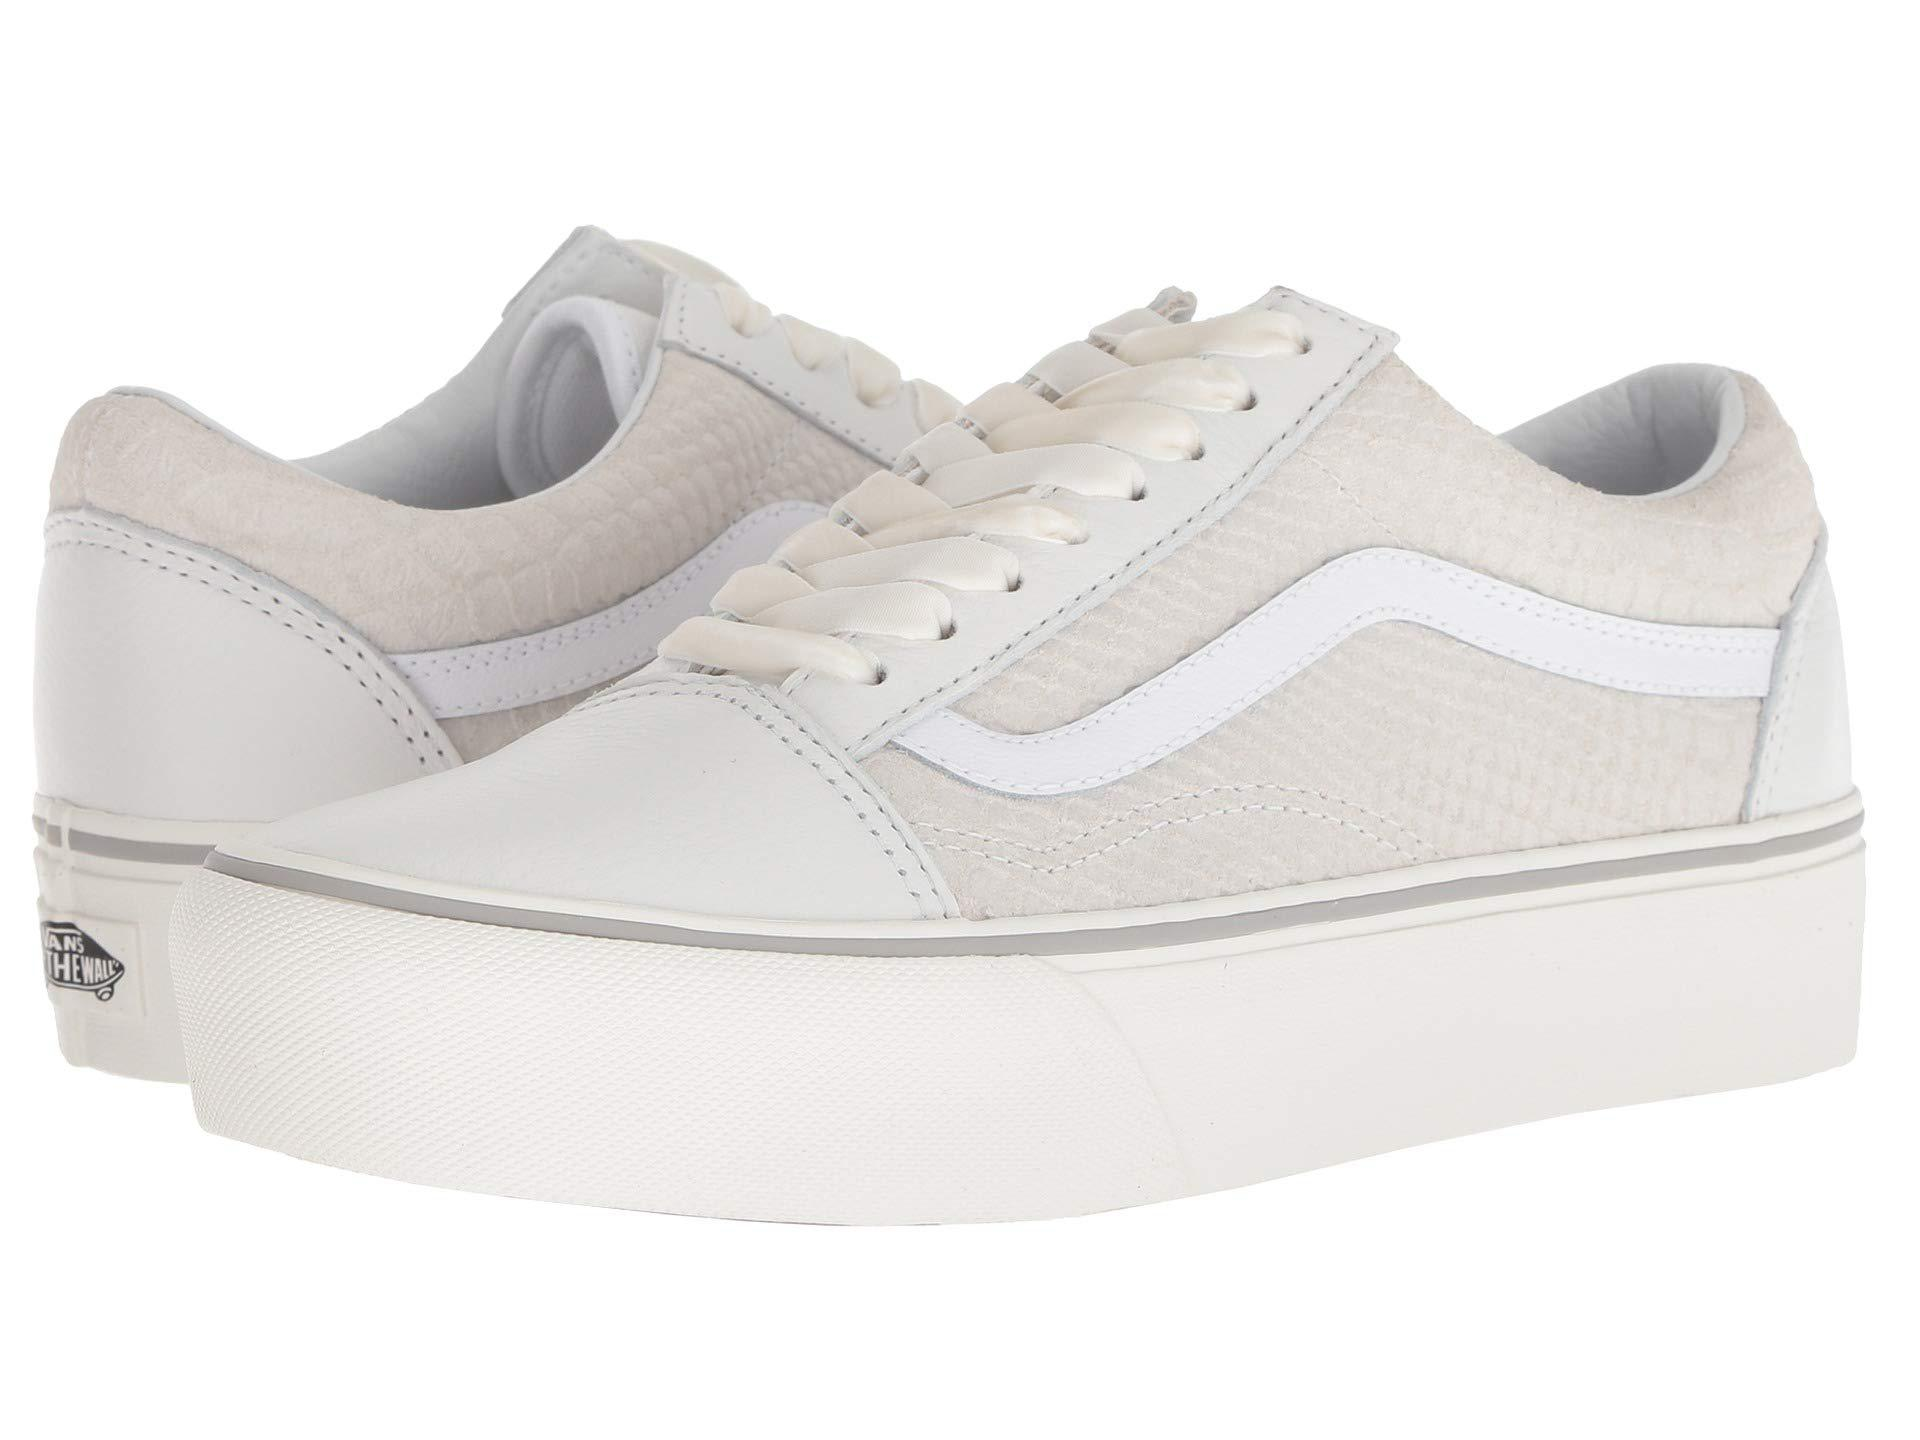 fe4c28309c8 Lyst - Vans Old Skool Platform ((leather) Snake white) Skate Shoes ...